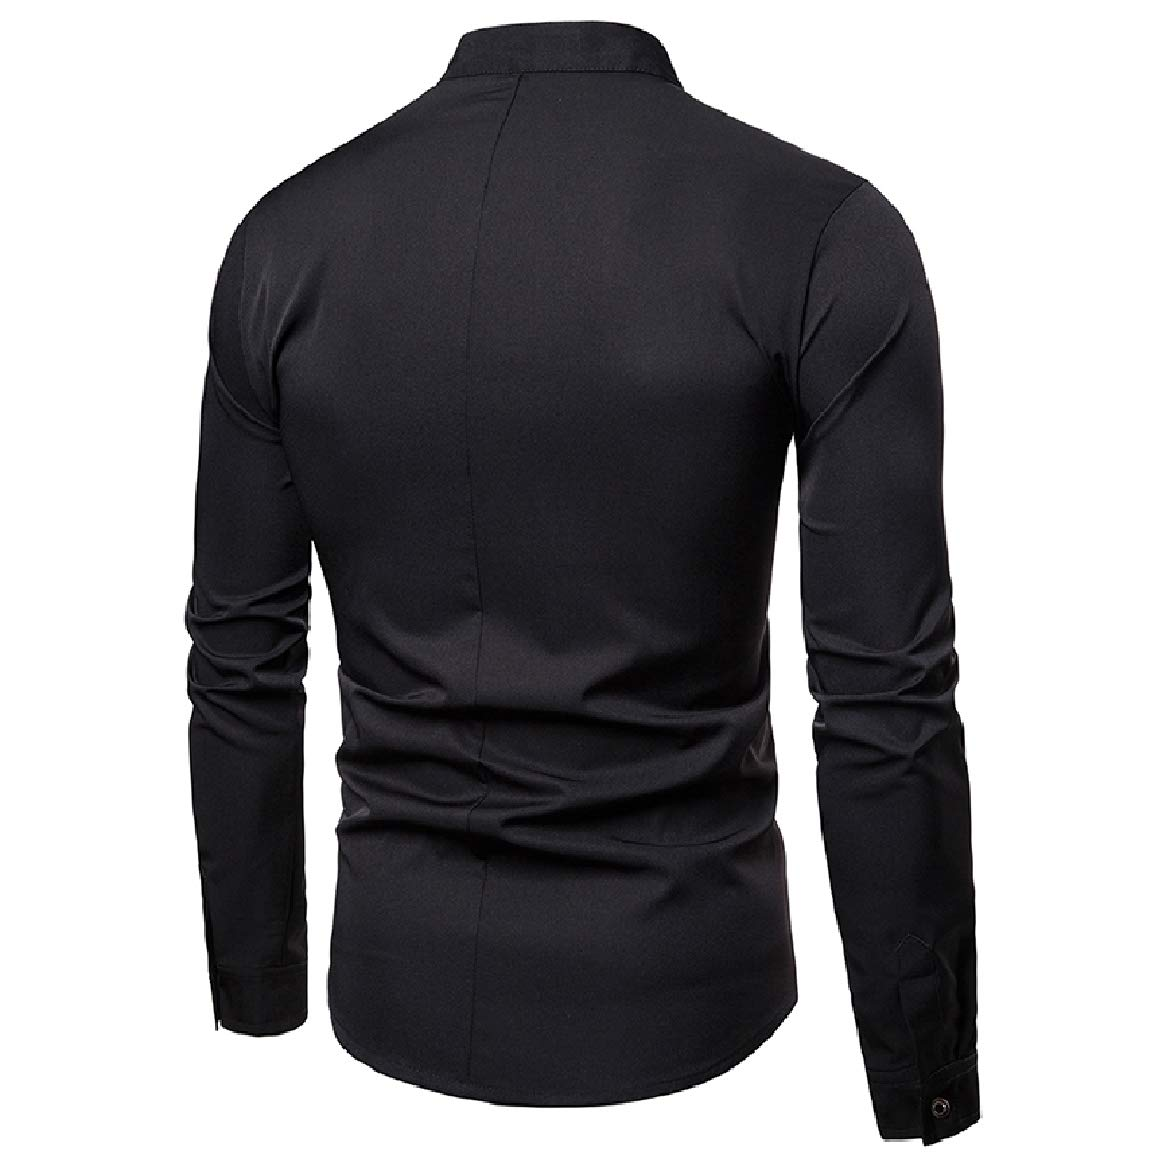 SportsX Mens Stand Collar Pure Long-Sleeve Buttons Stylish Shirts